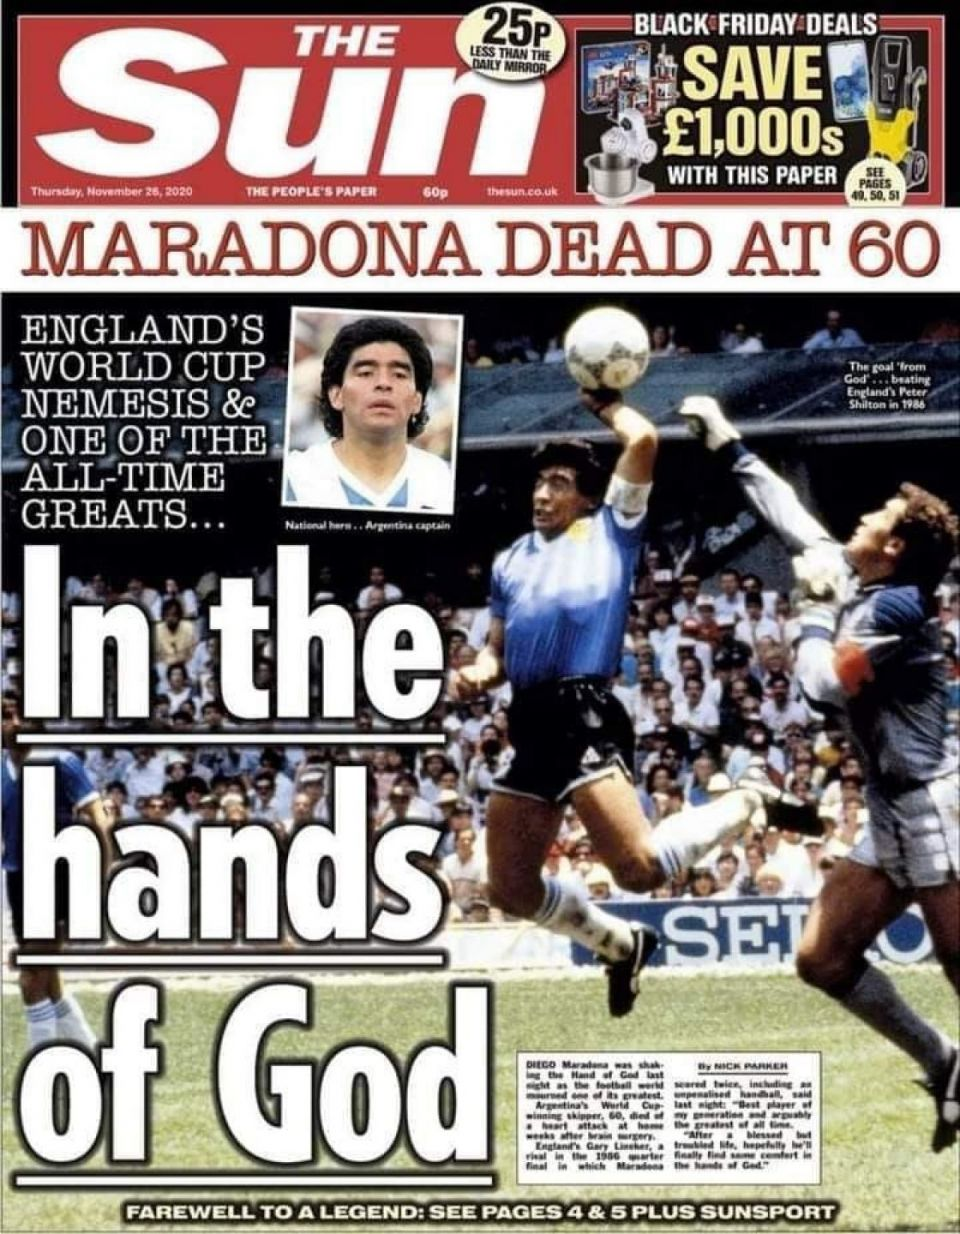 "Even in his death, Maradona hurts ""Great"" Britain"